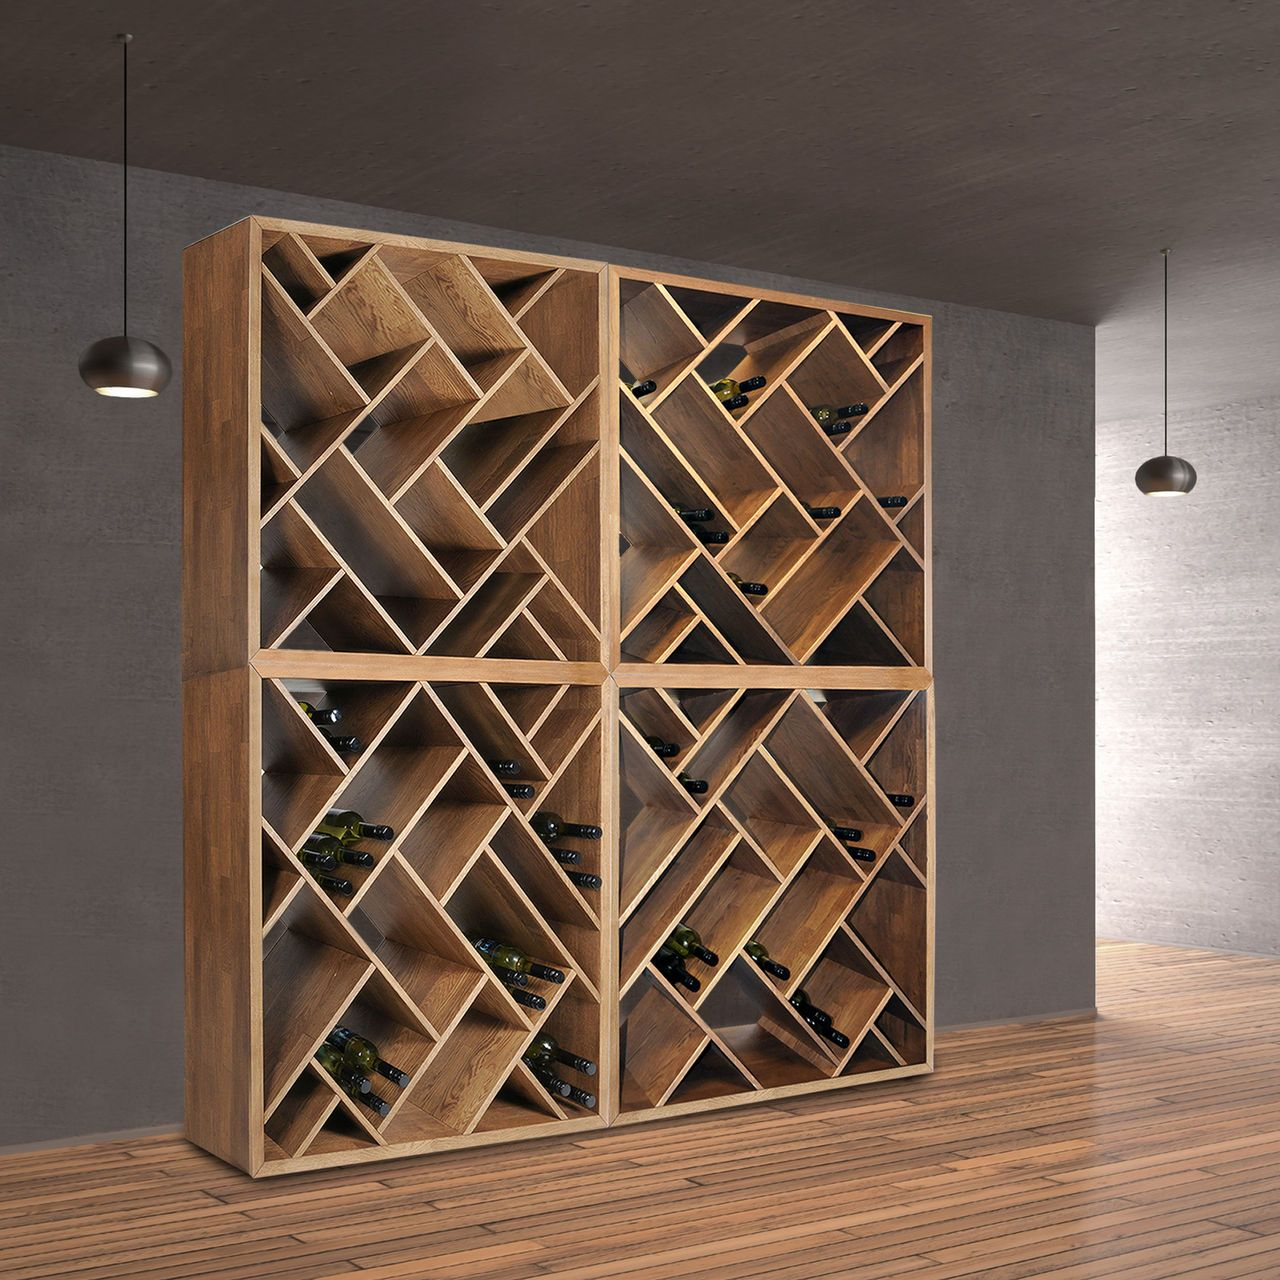 weinregal zeus natur und gebeizt in 39 weinregale holz. Black Bedroom Furniture Sets. Home Design Ideas